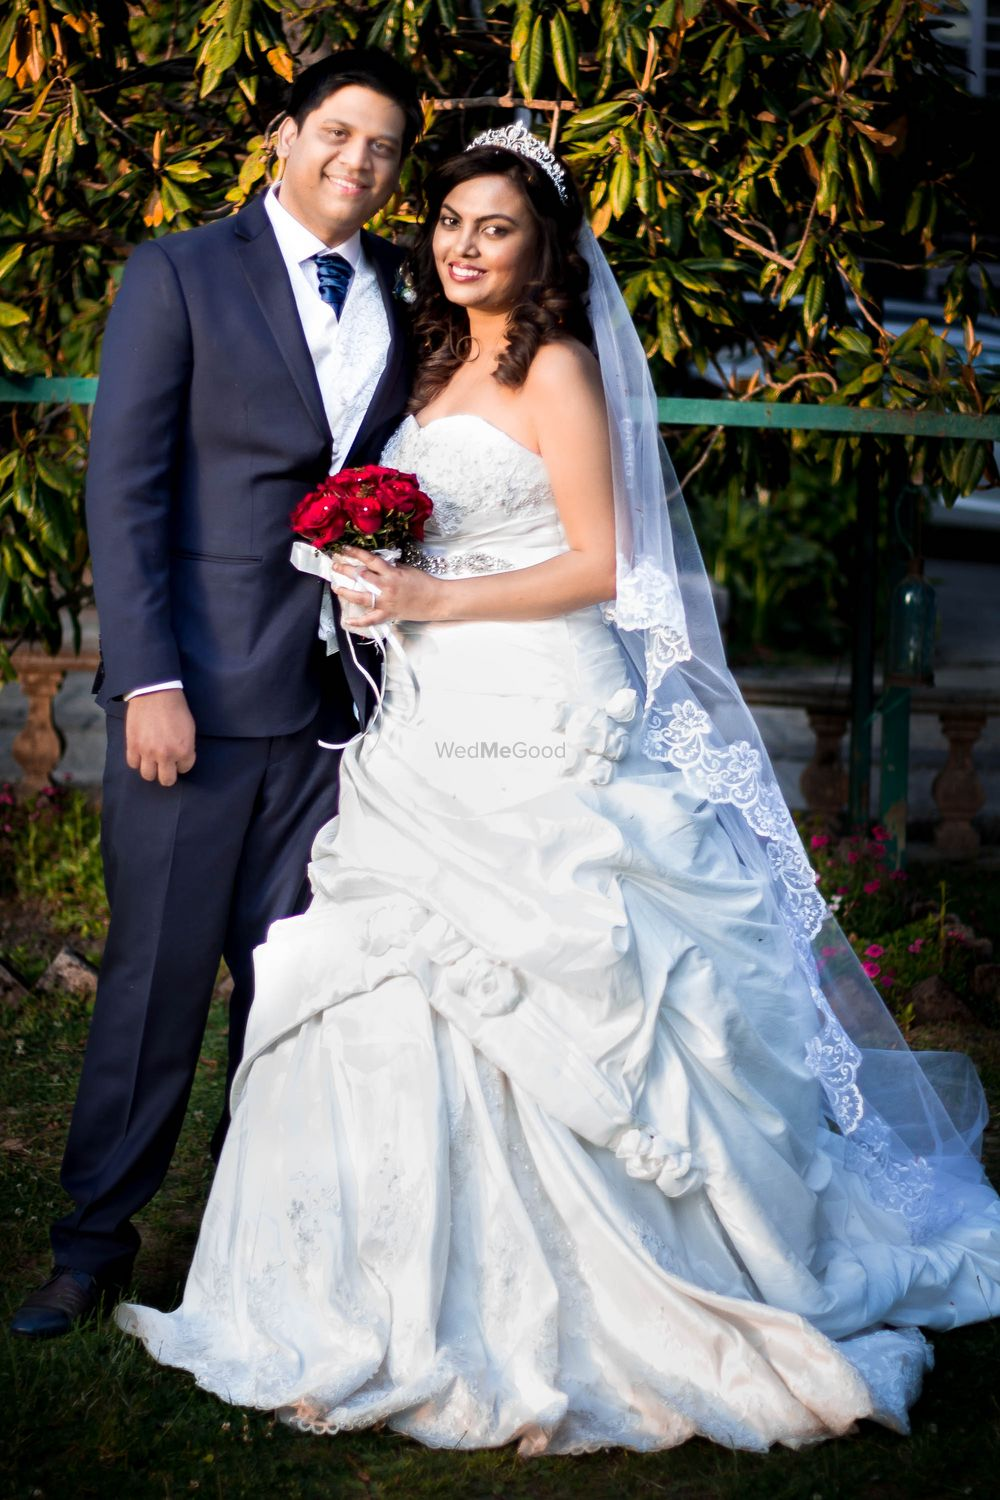 Photo of White Christian Wedding Gown with Tiara and Veil